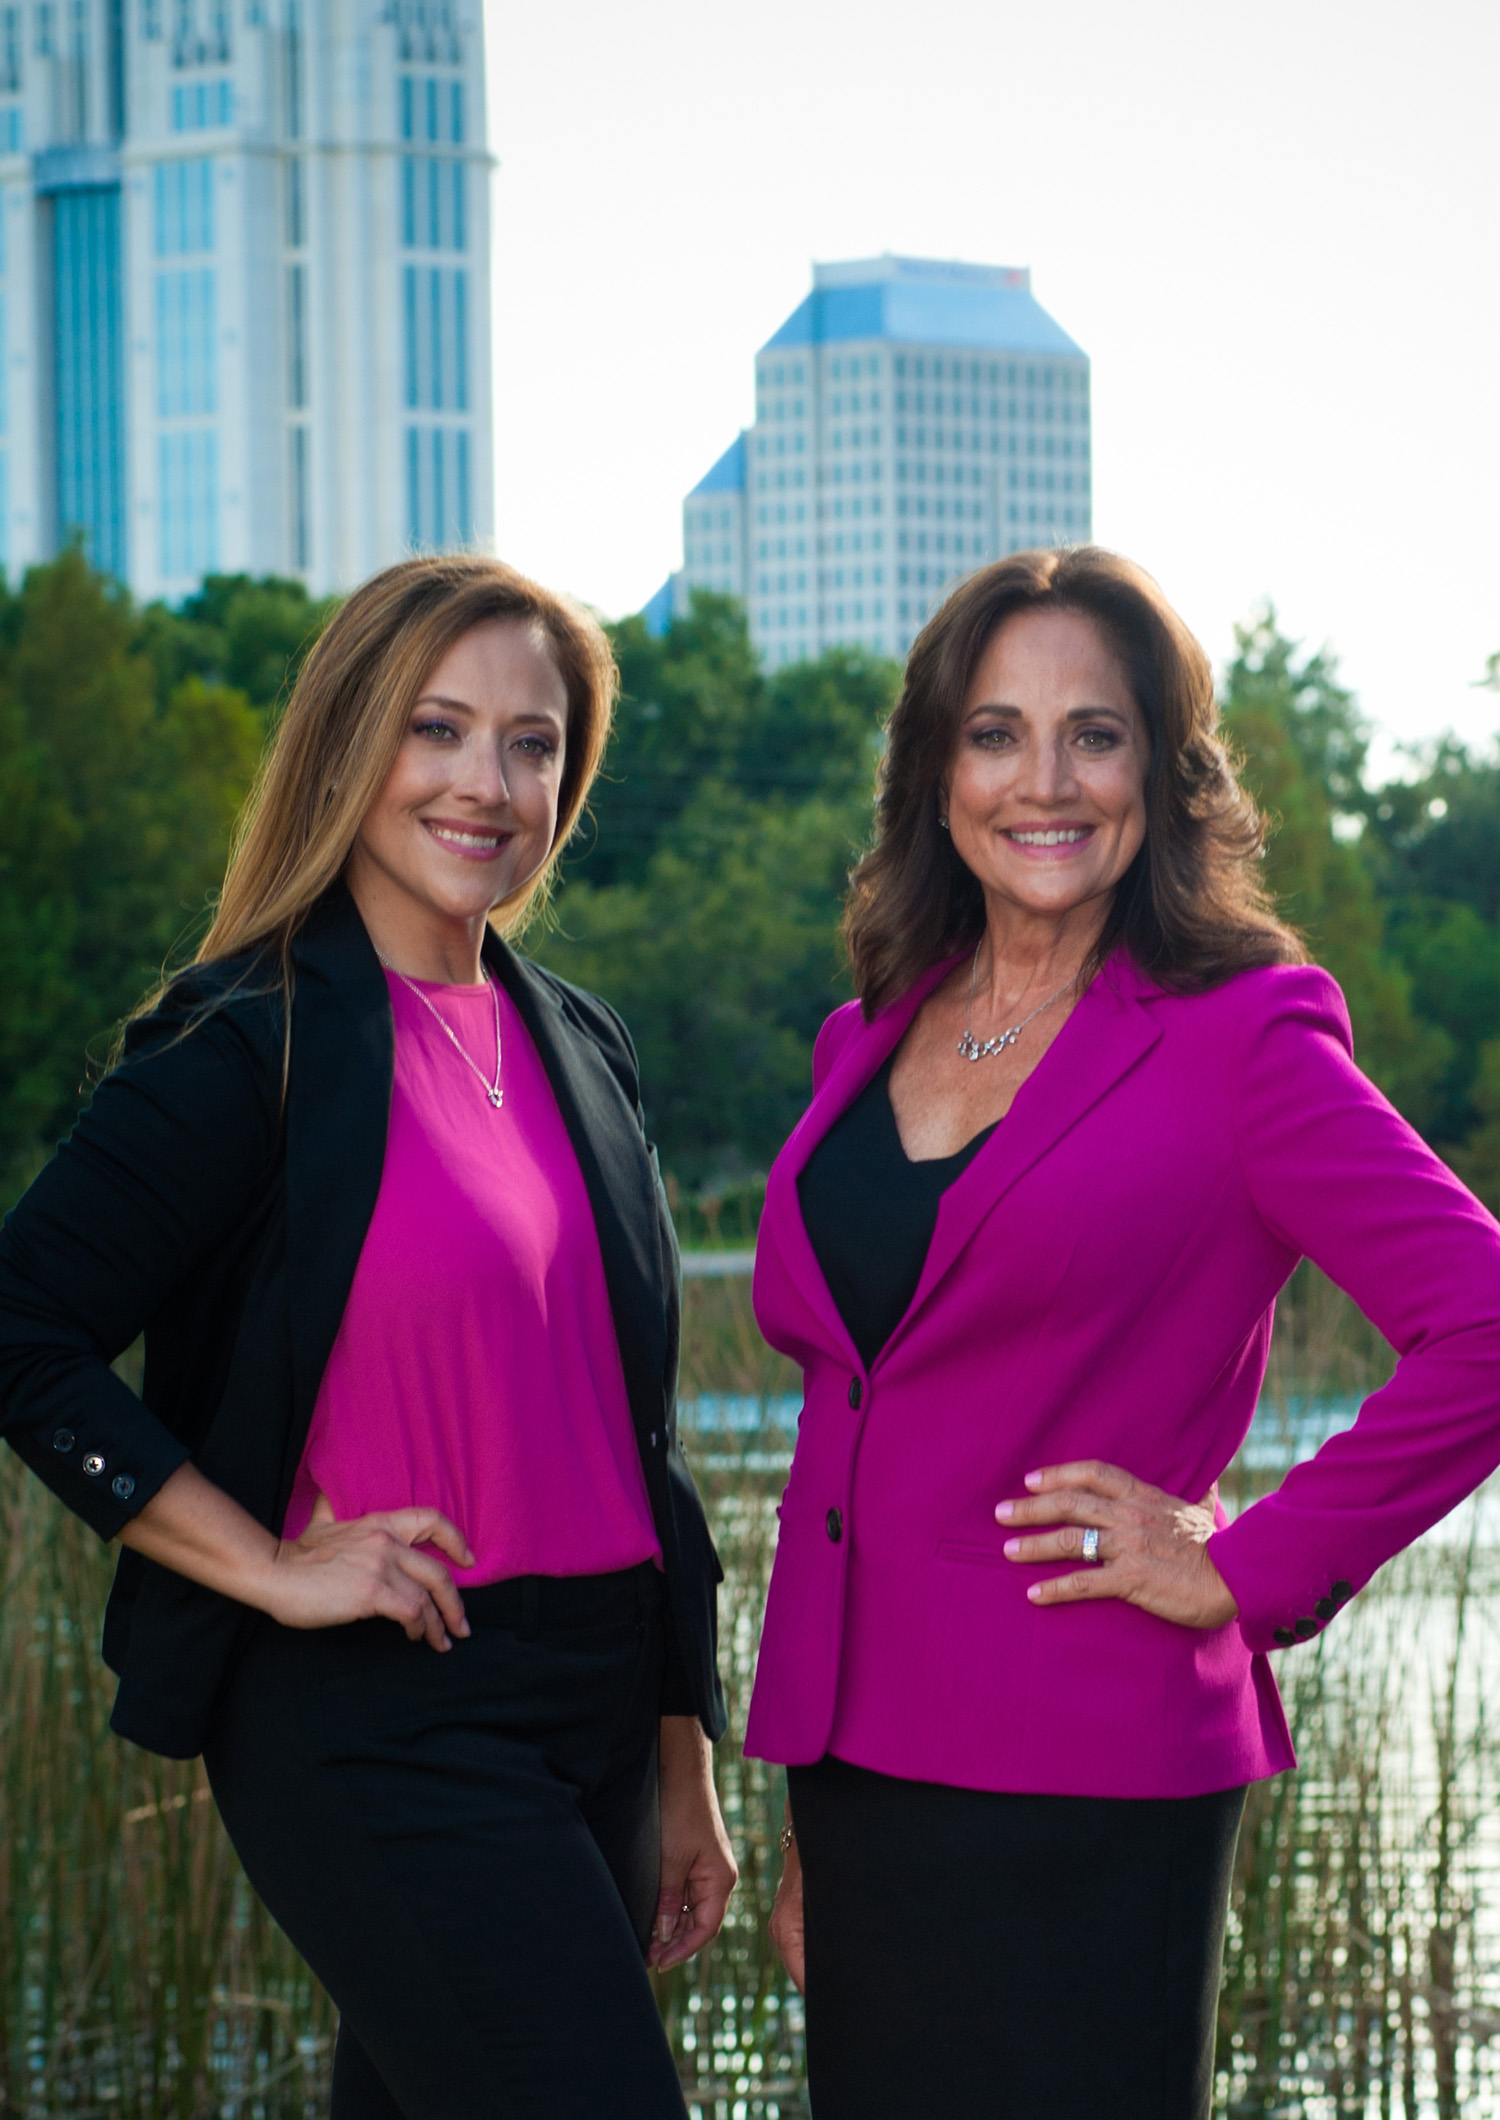 Vanessa Loomie and Jan Coudriet, daughter-mother Realtor team